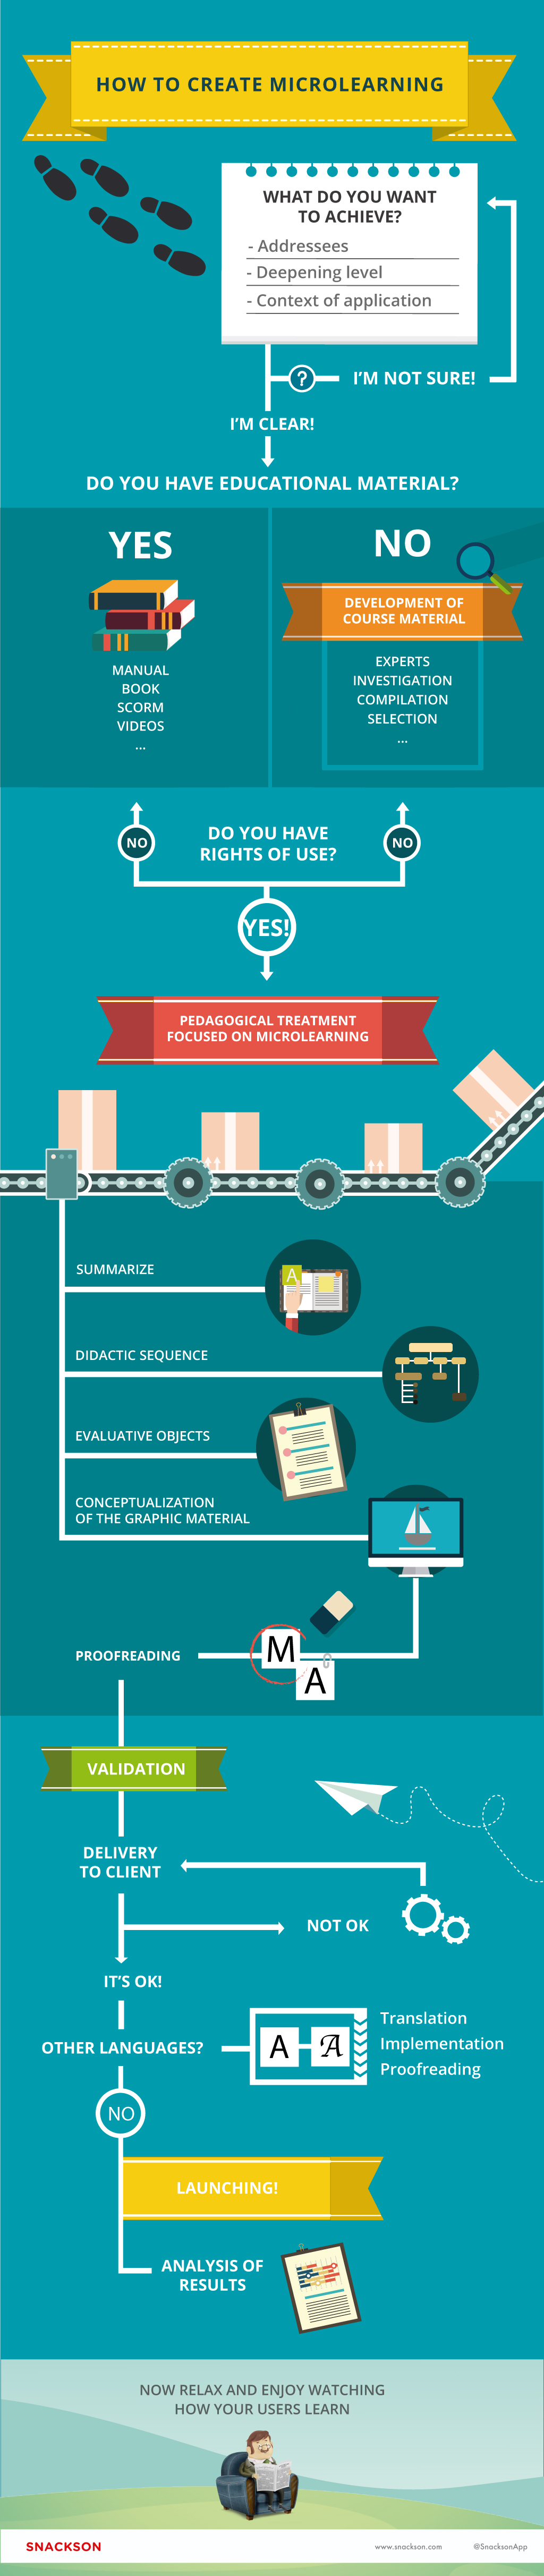 infographic_creation_microlearning